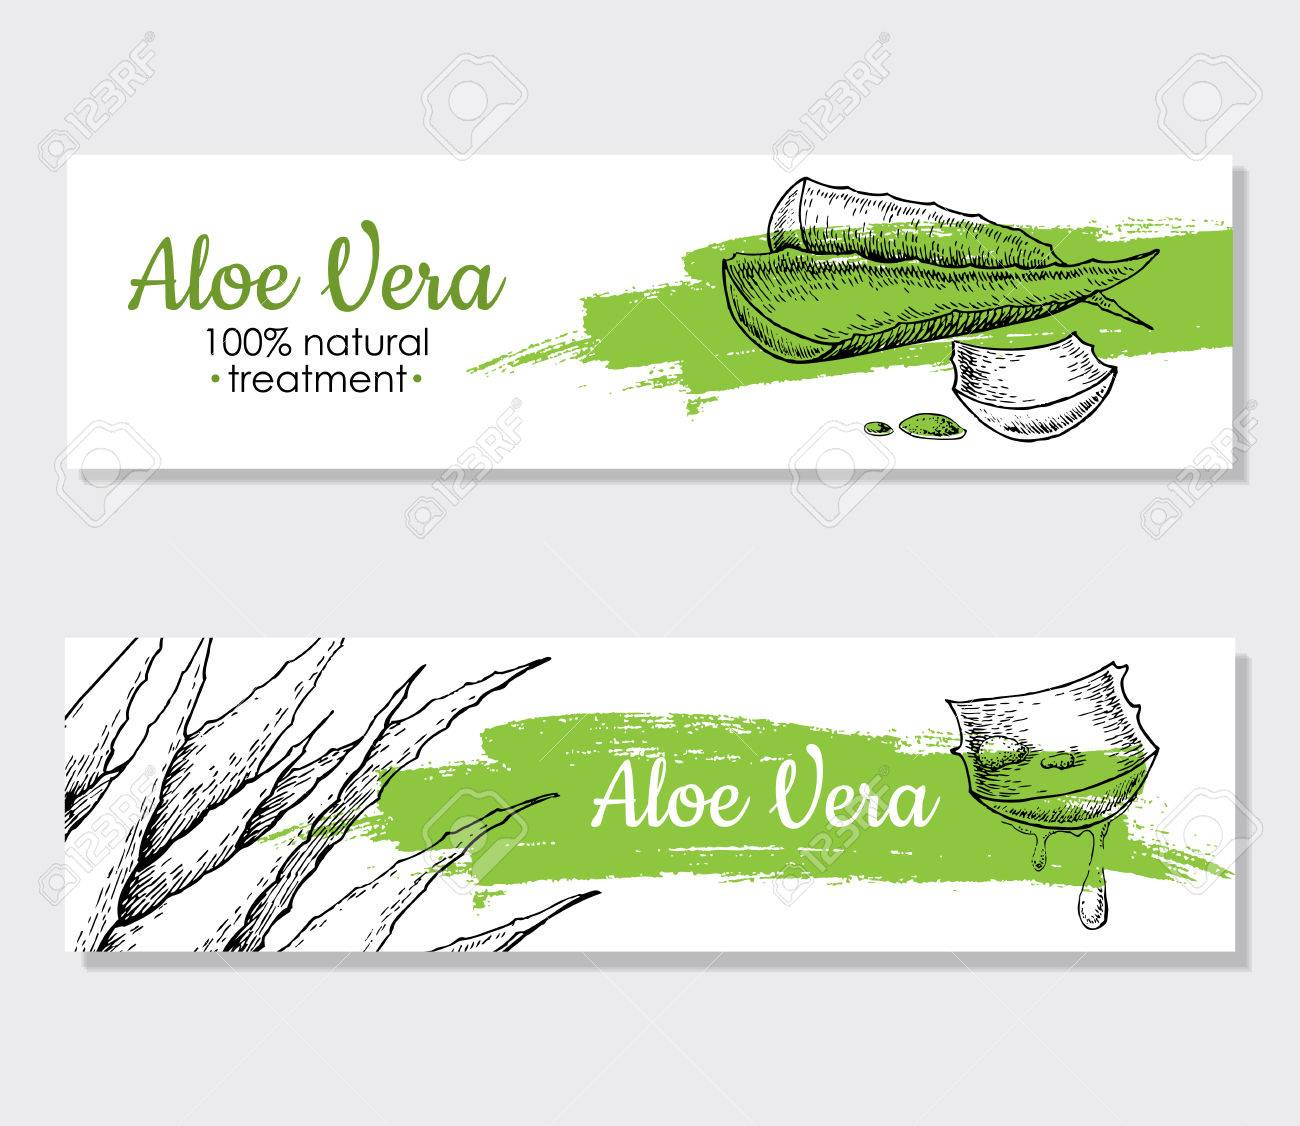 Vector aloe vera hand drawn illustrations. Detailed drawing. Aloe Vera banner, poster, label, brochure template for business promote. - 54859522